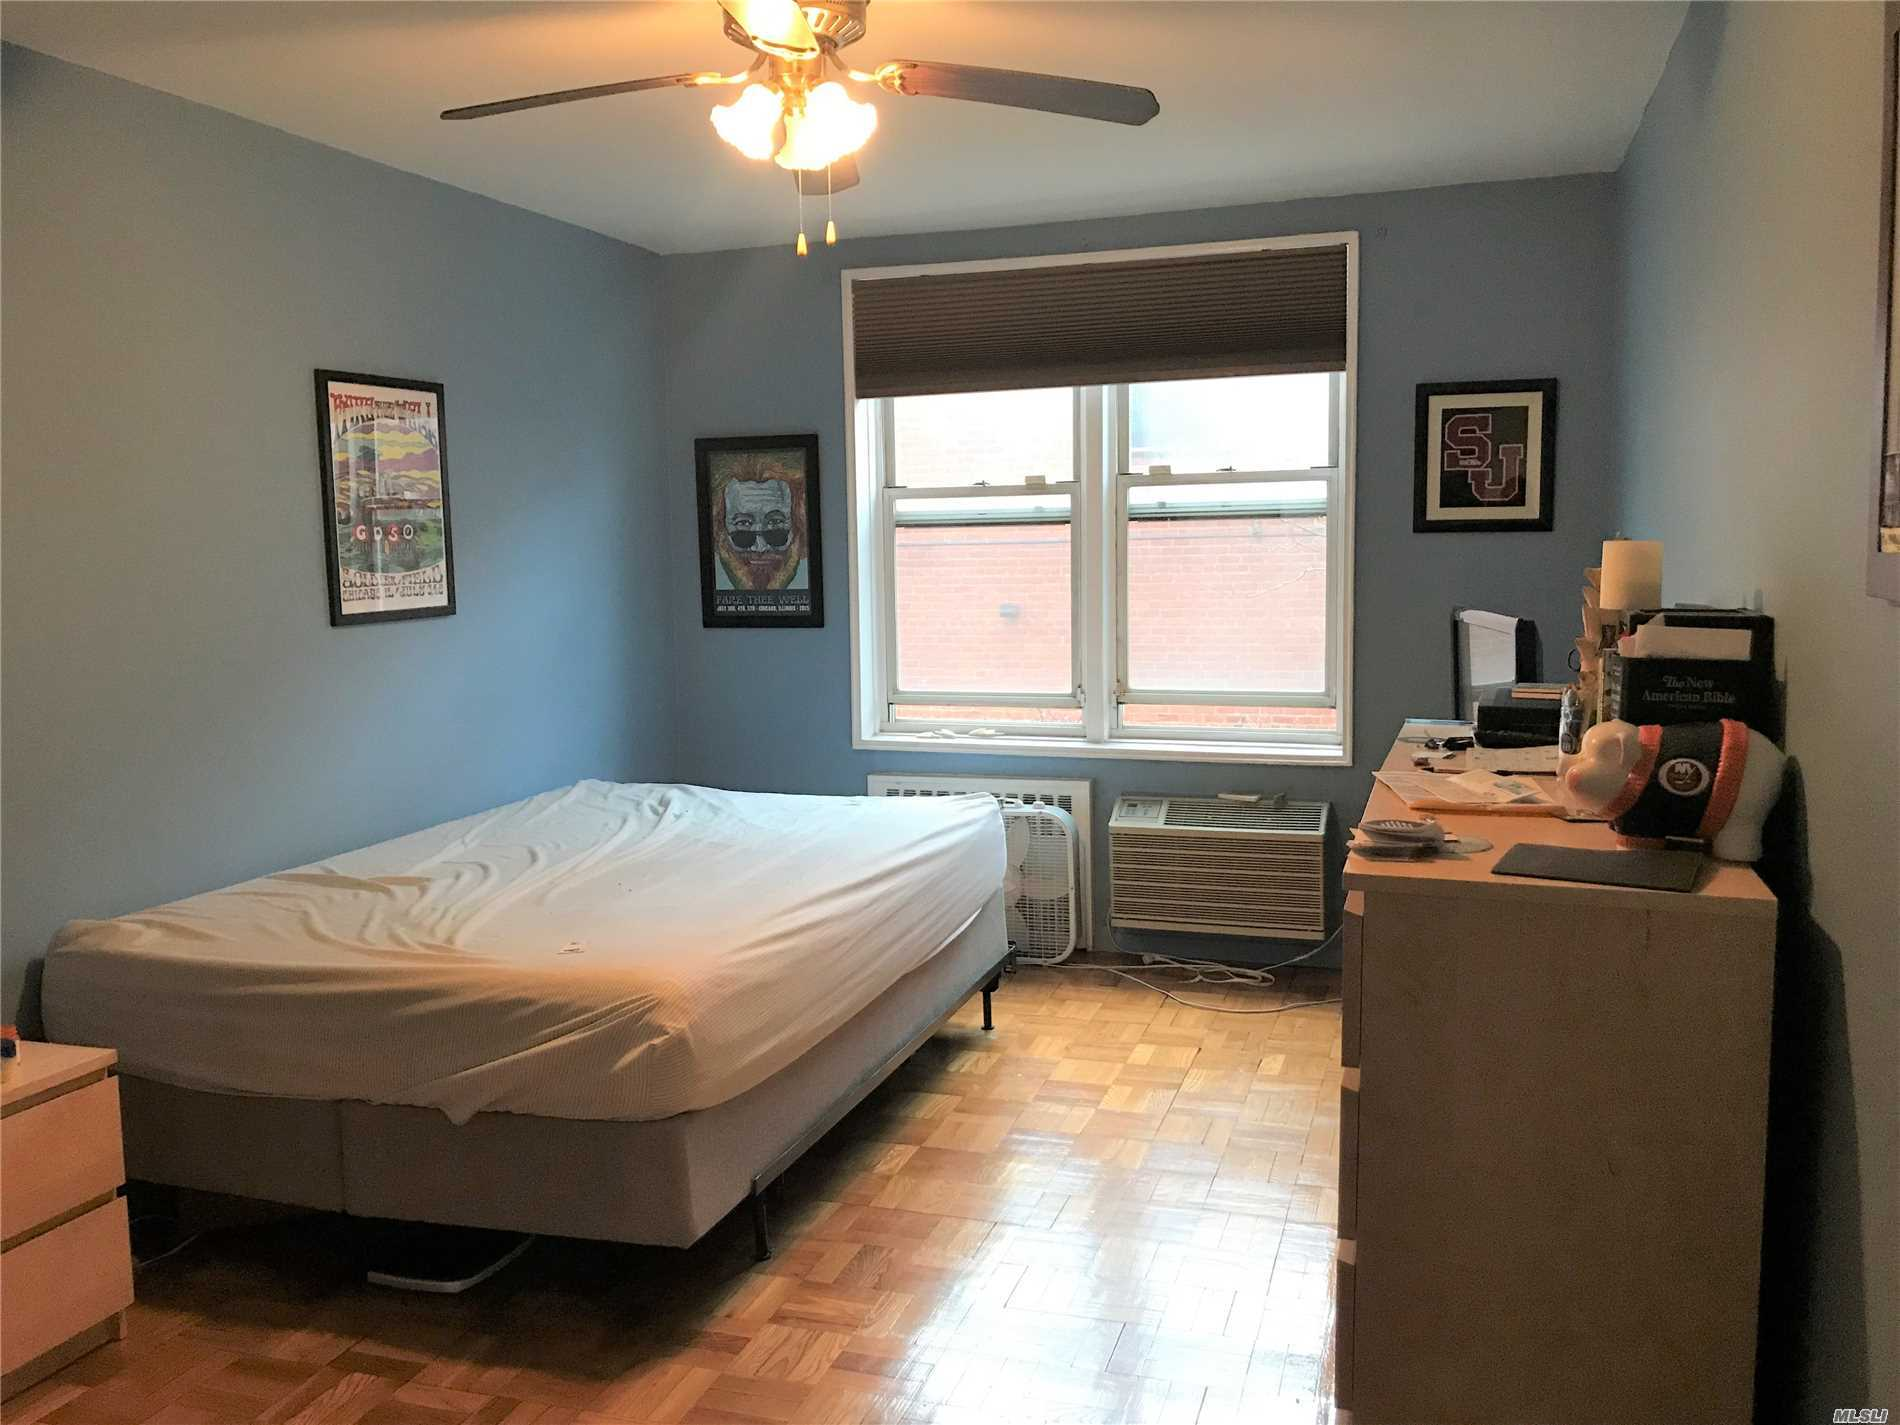 Spacious 1 Bedroom Apt w/ Balcony, Large Living room and 5 closets, Kitchen and Dining area has Window and 3 year old Cook top and appliance, Updated Electricity installation/ Laundry and Bike room, Big Court yard